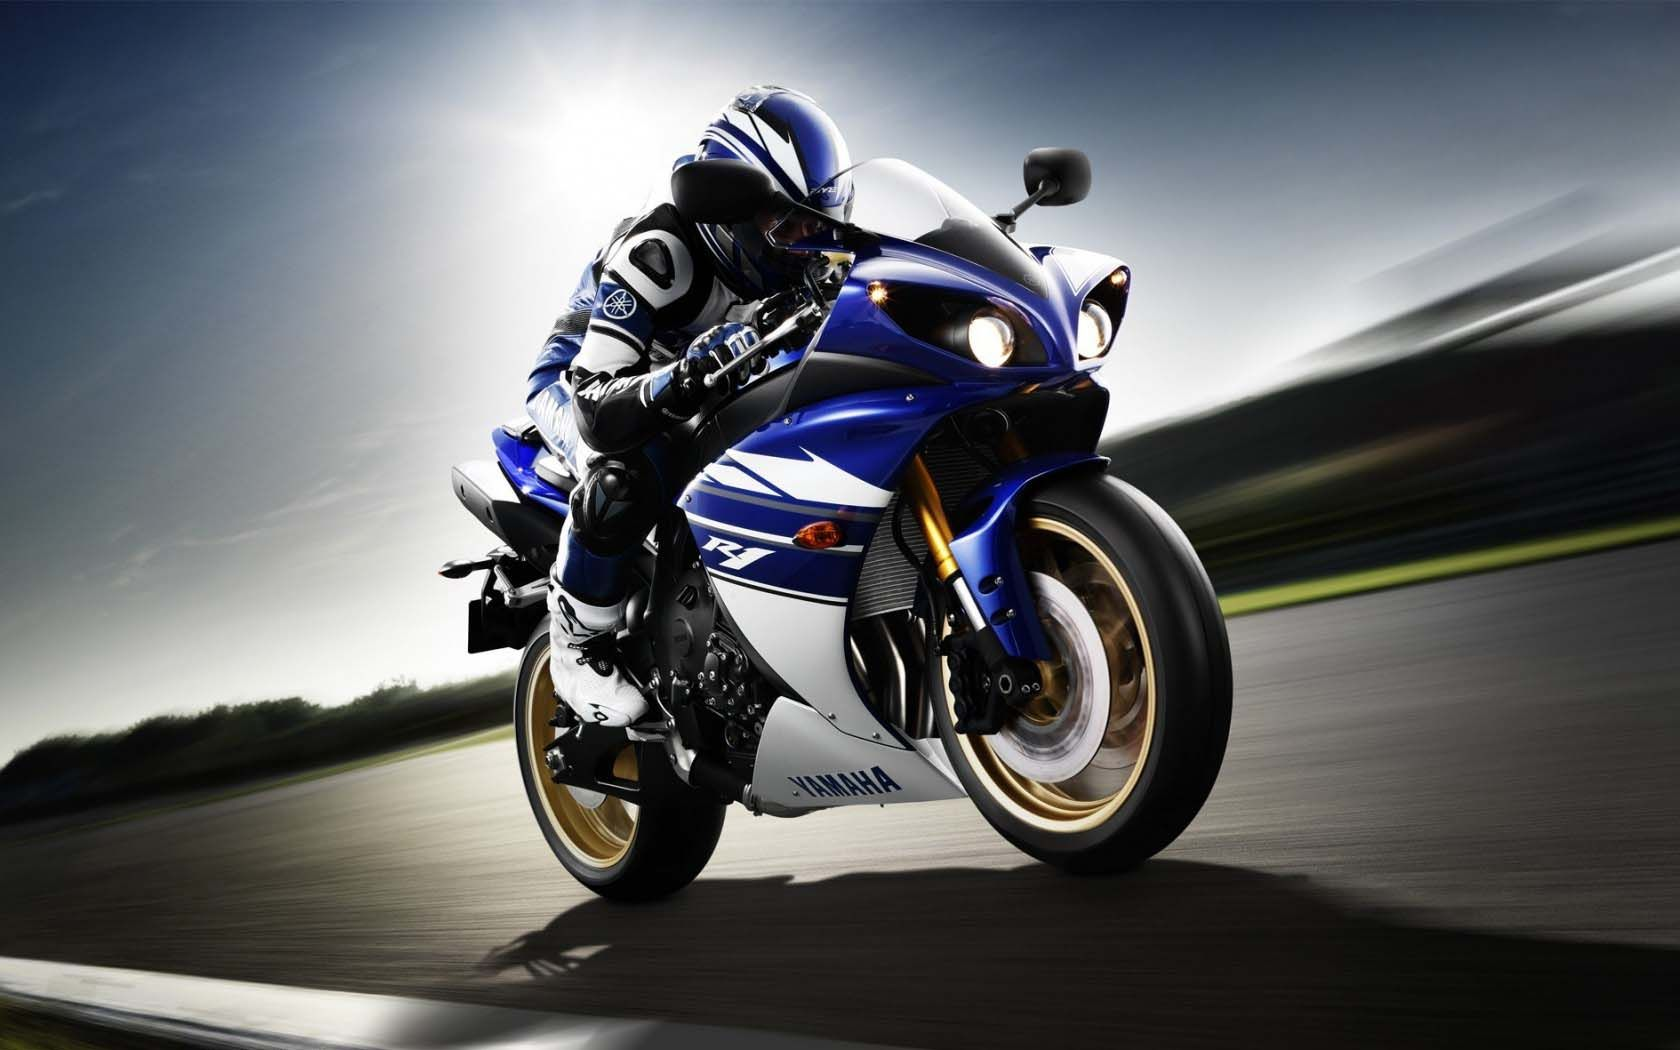 Yamaha Bike Hd Wallpapers Sports Bikes Motorcycles Sportbikes Yamaha Bikes